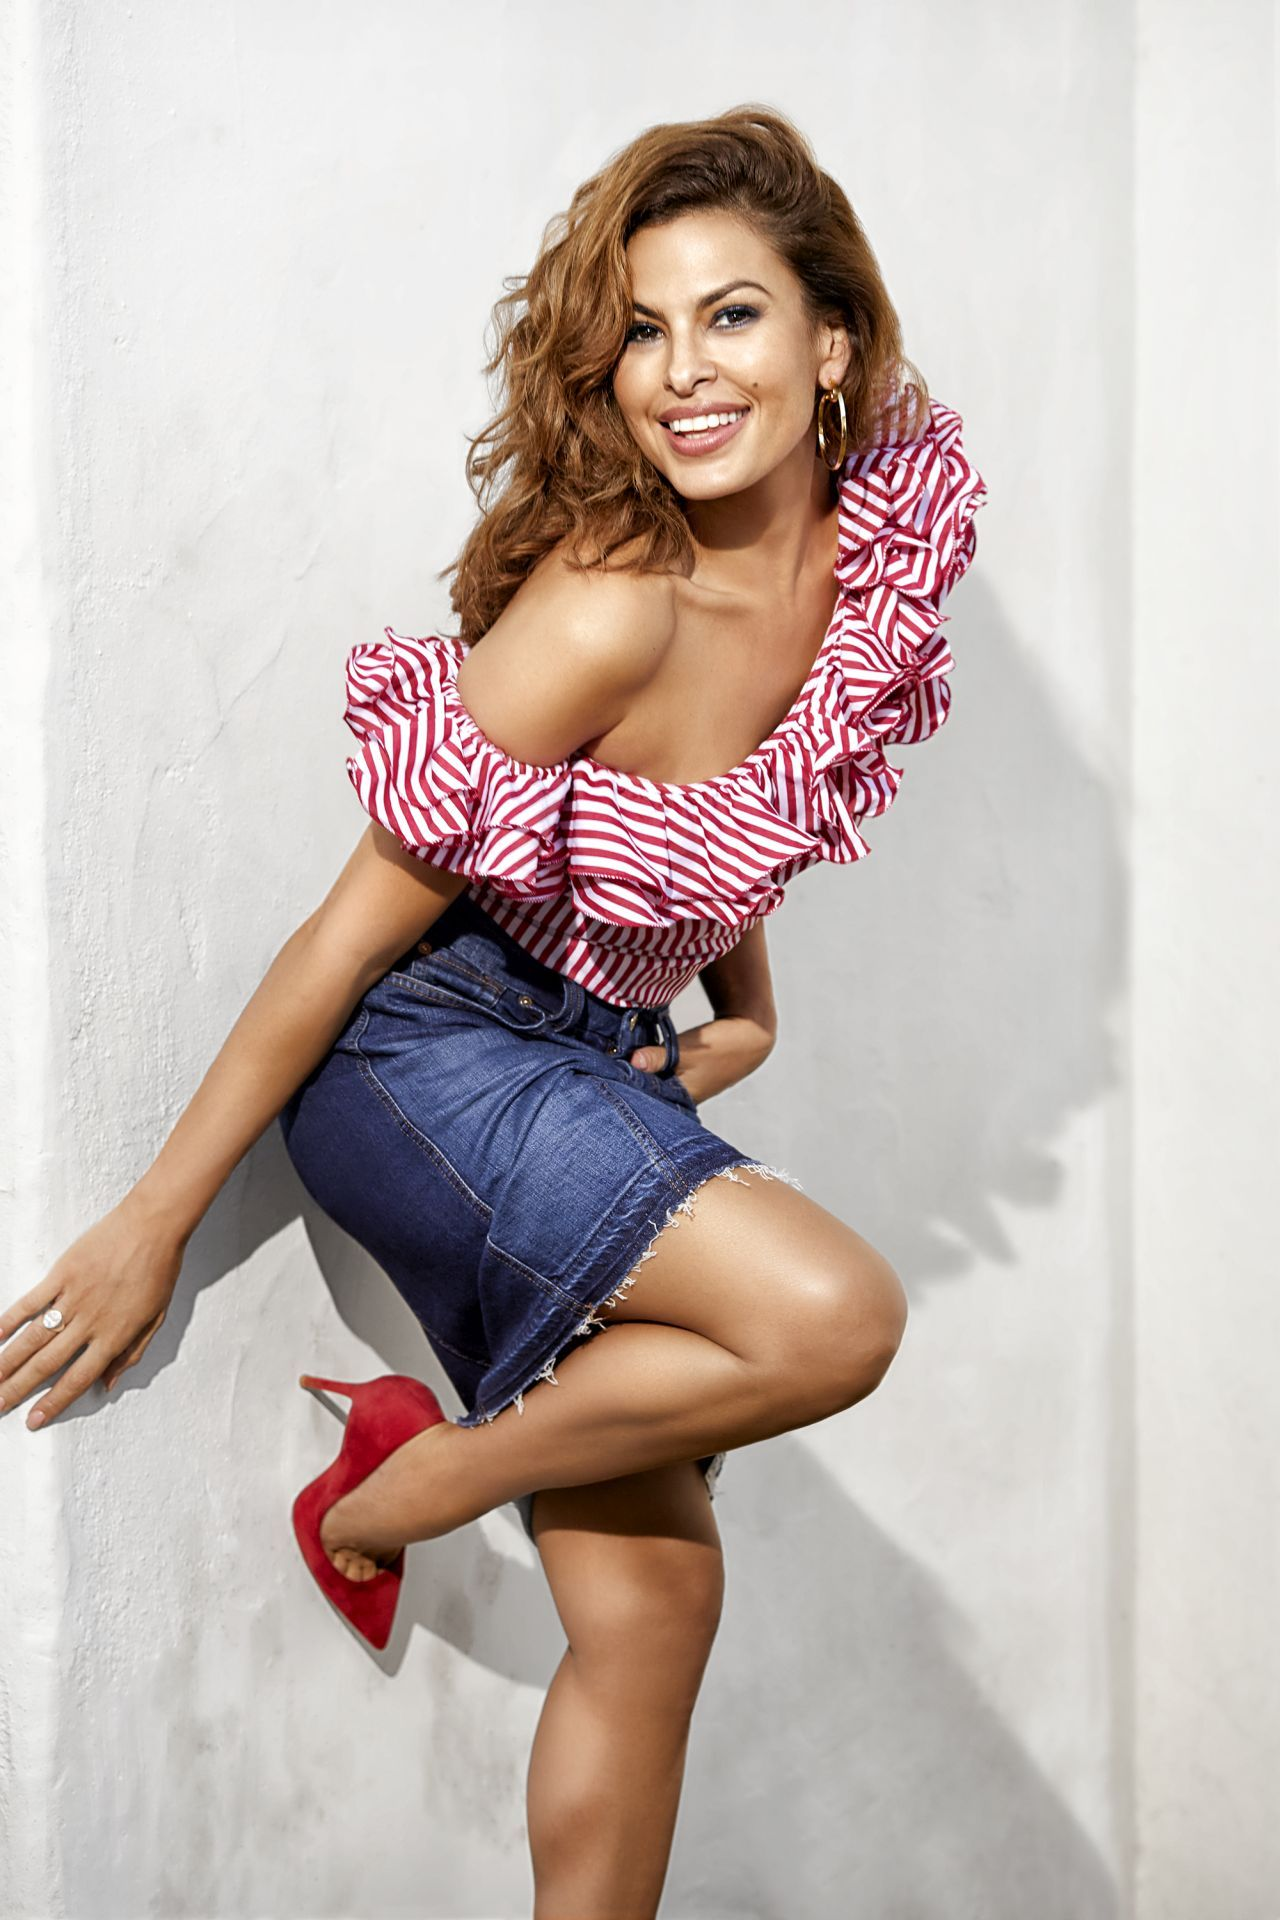 Eva Mendes Photoshoot For Shape 2017